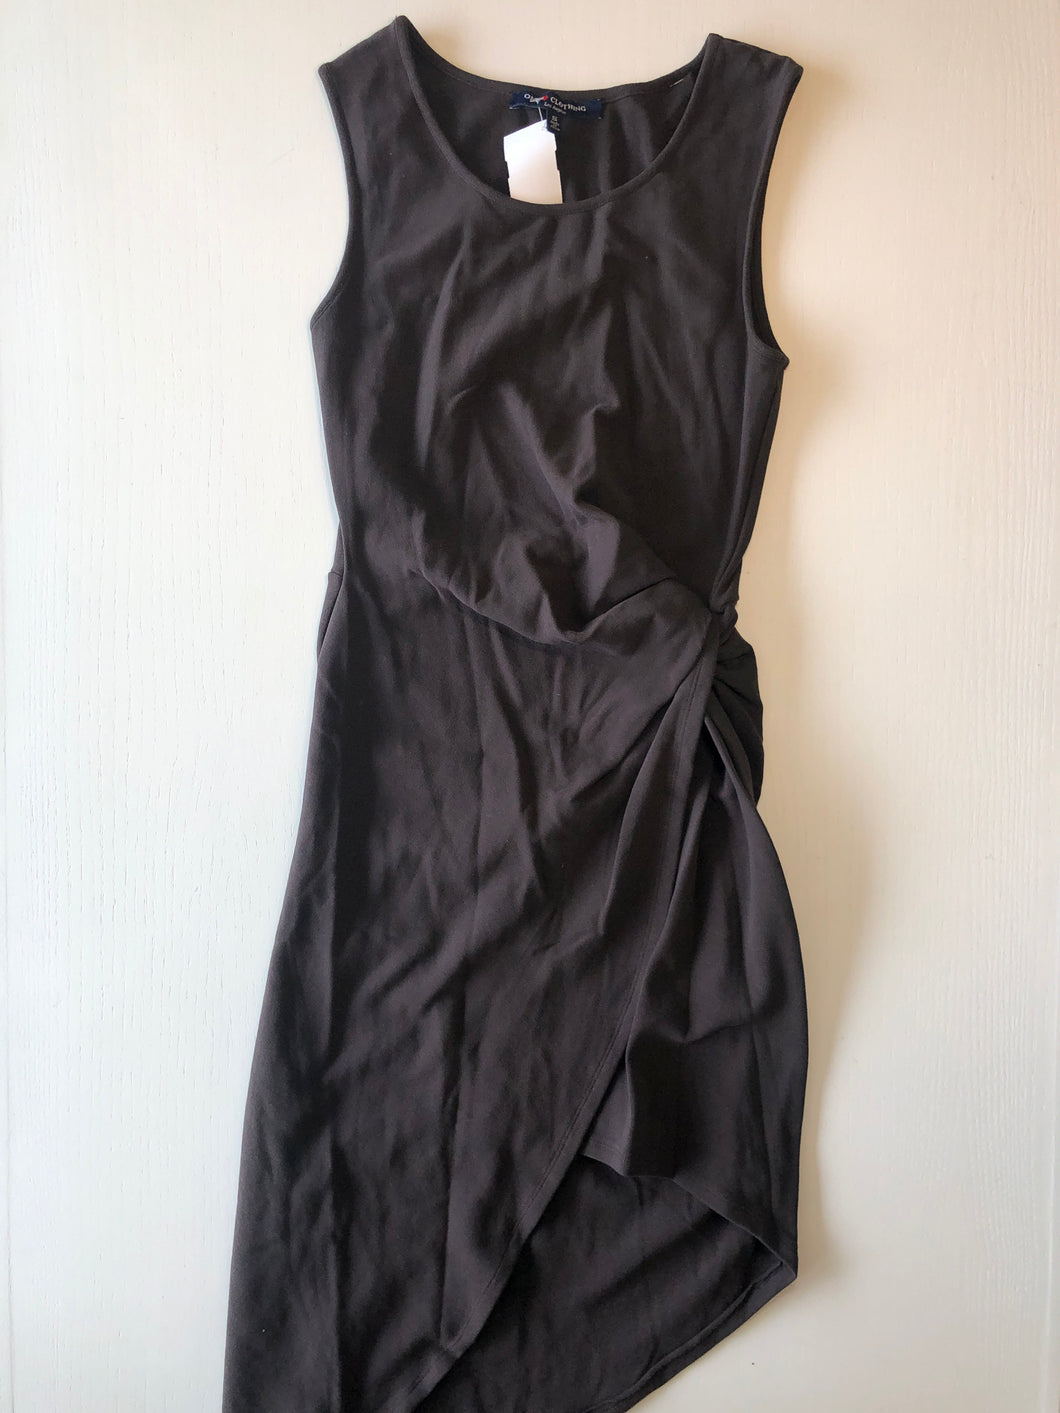 Gently Used Women's One Clothing Dress Size S